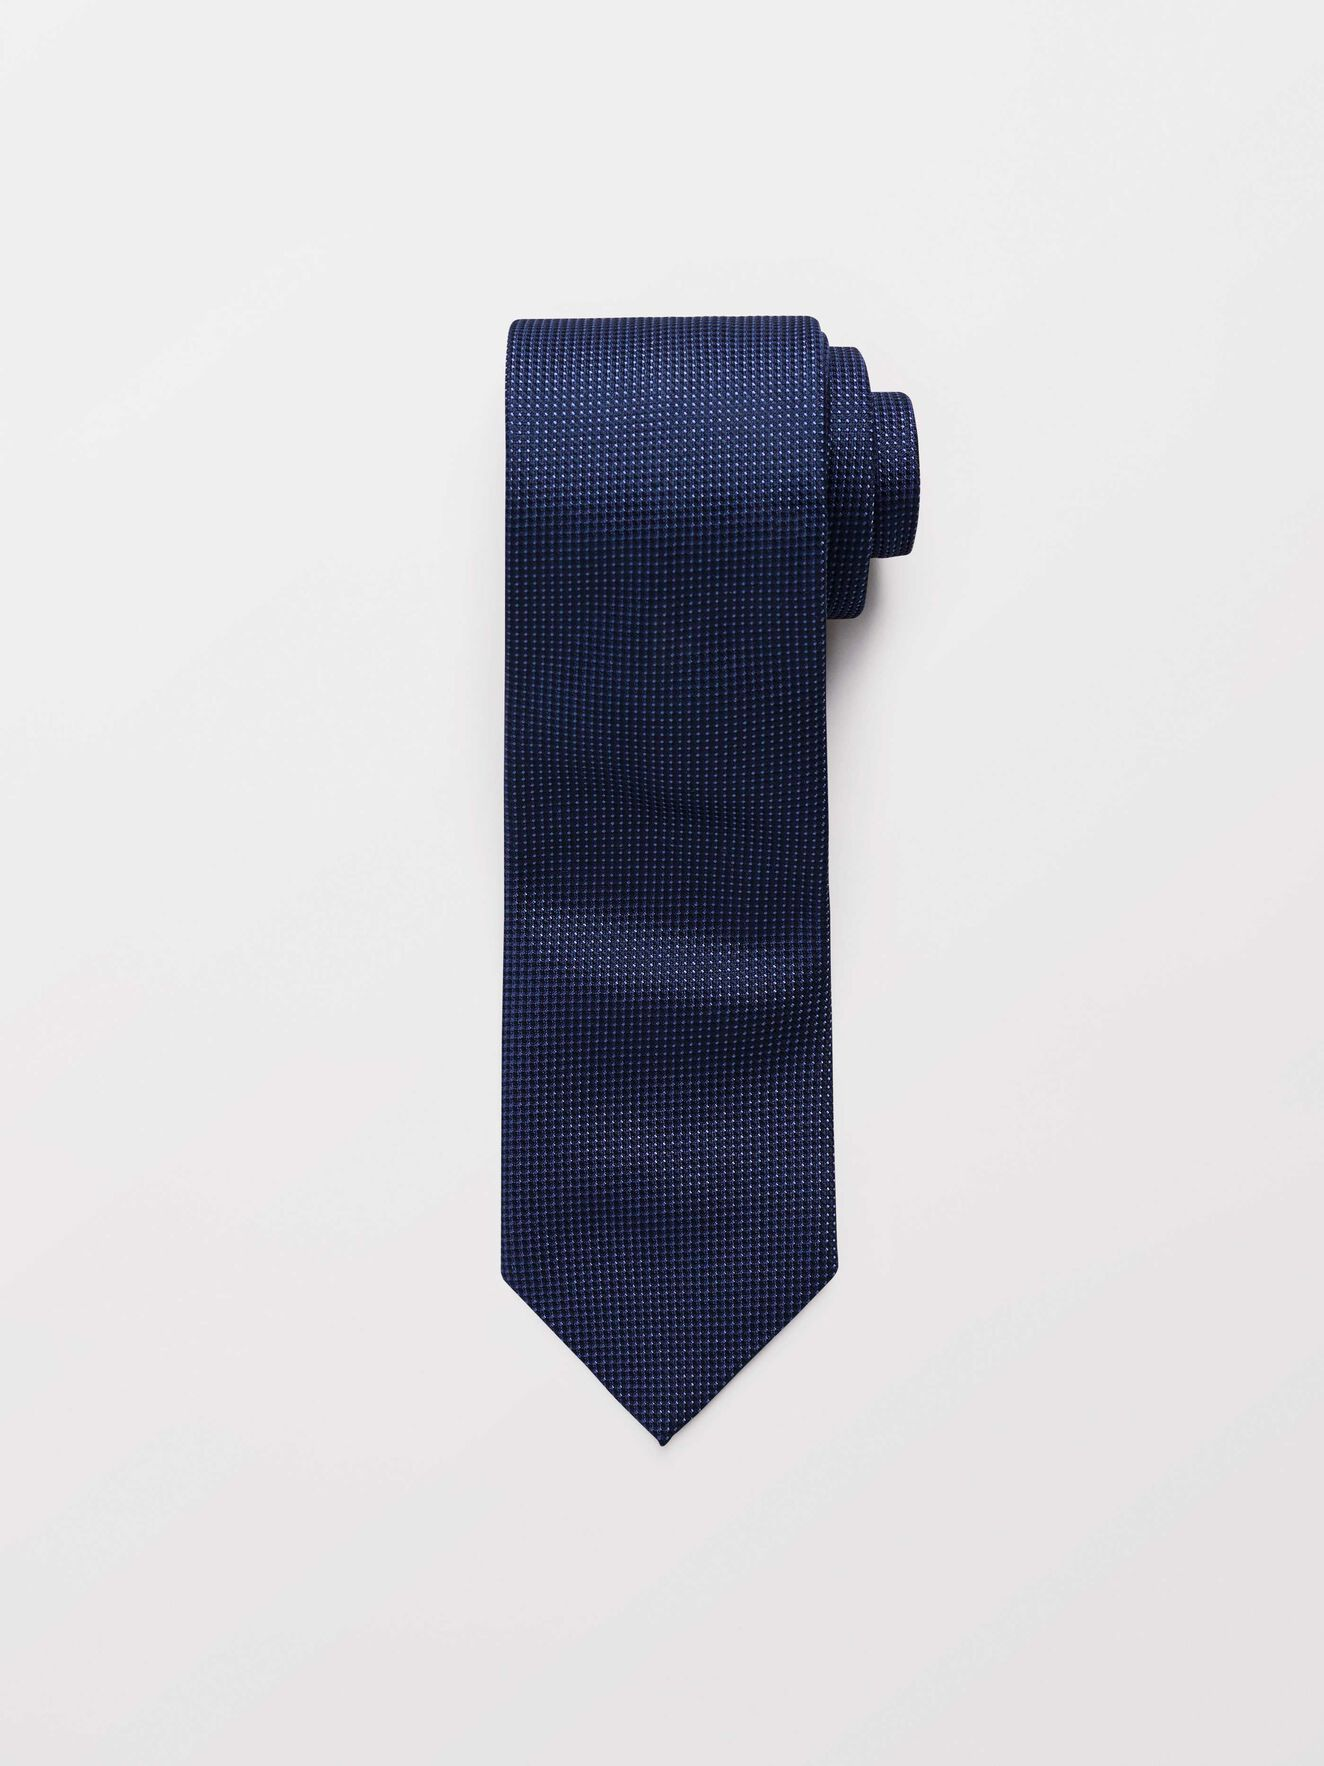 Tottis Tie in Light Ink from Tiger of Sweden